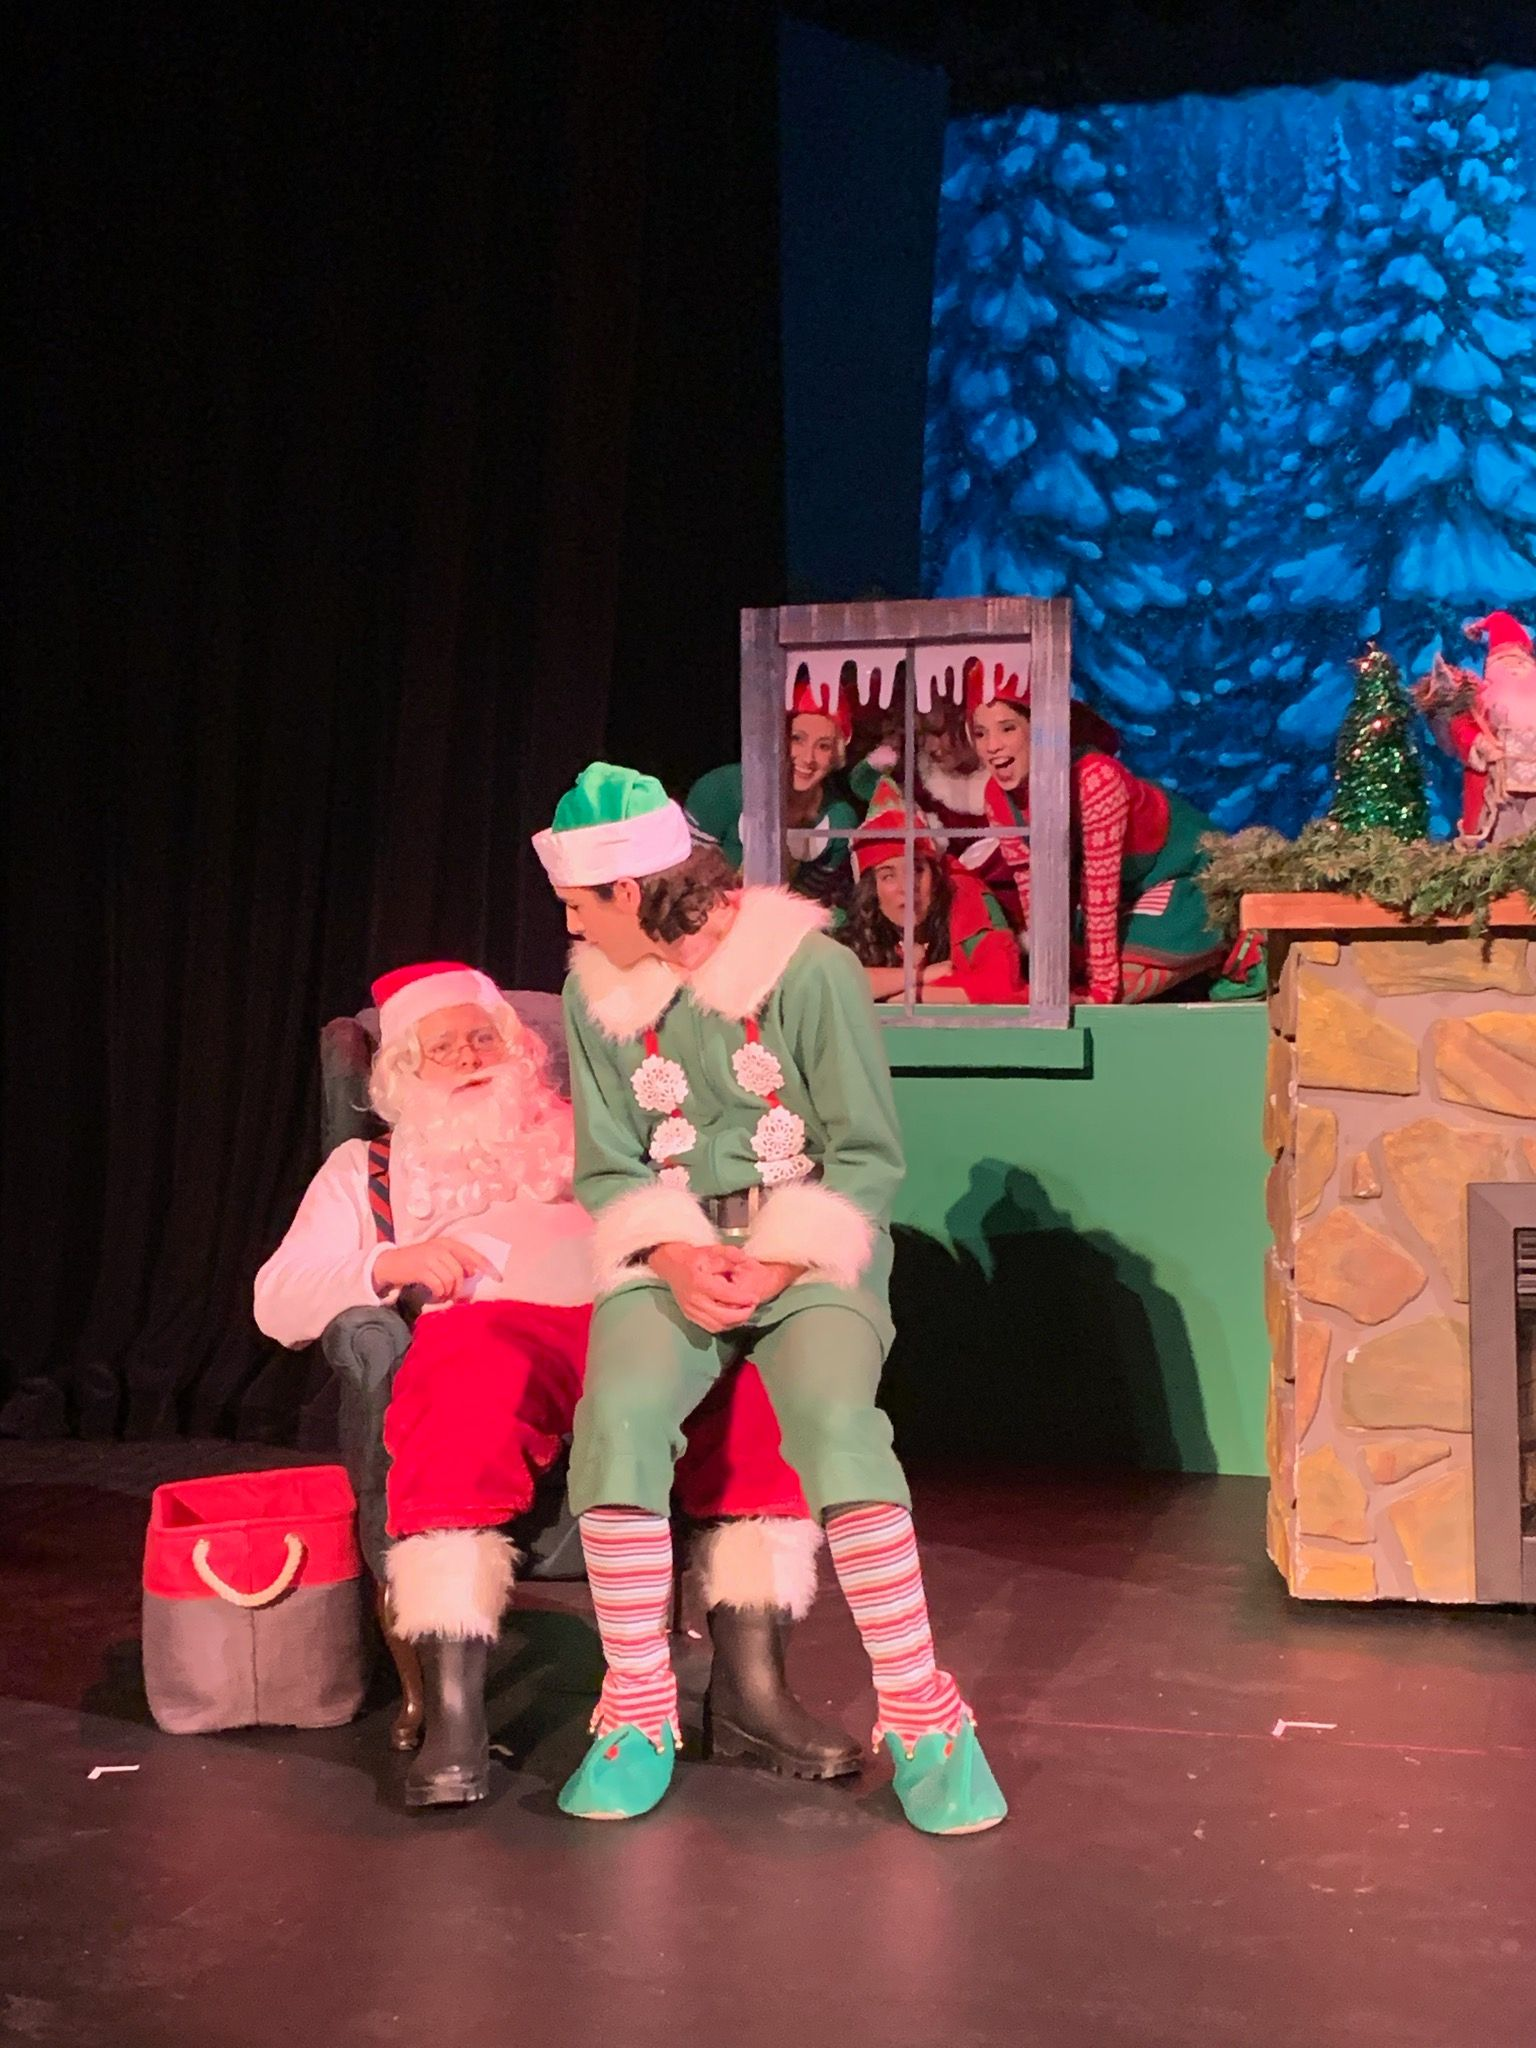 Catch Buddy the Elf on the stage this weekend